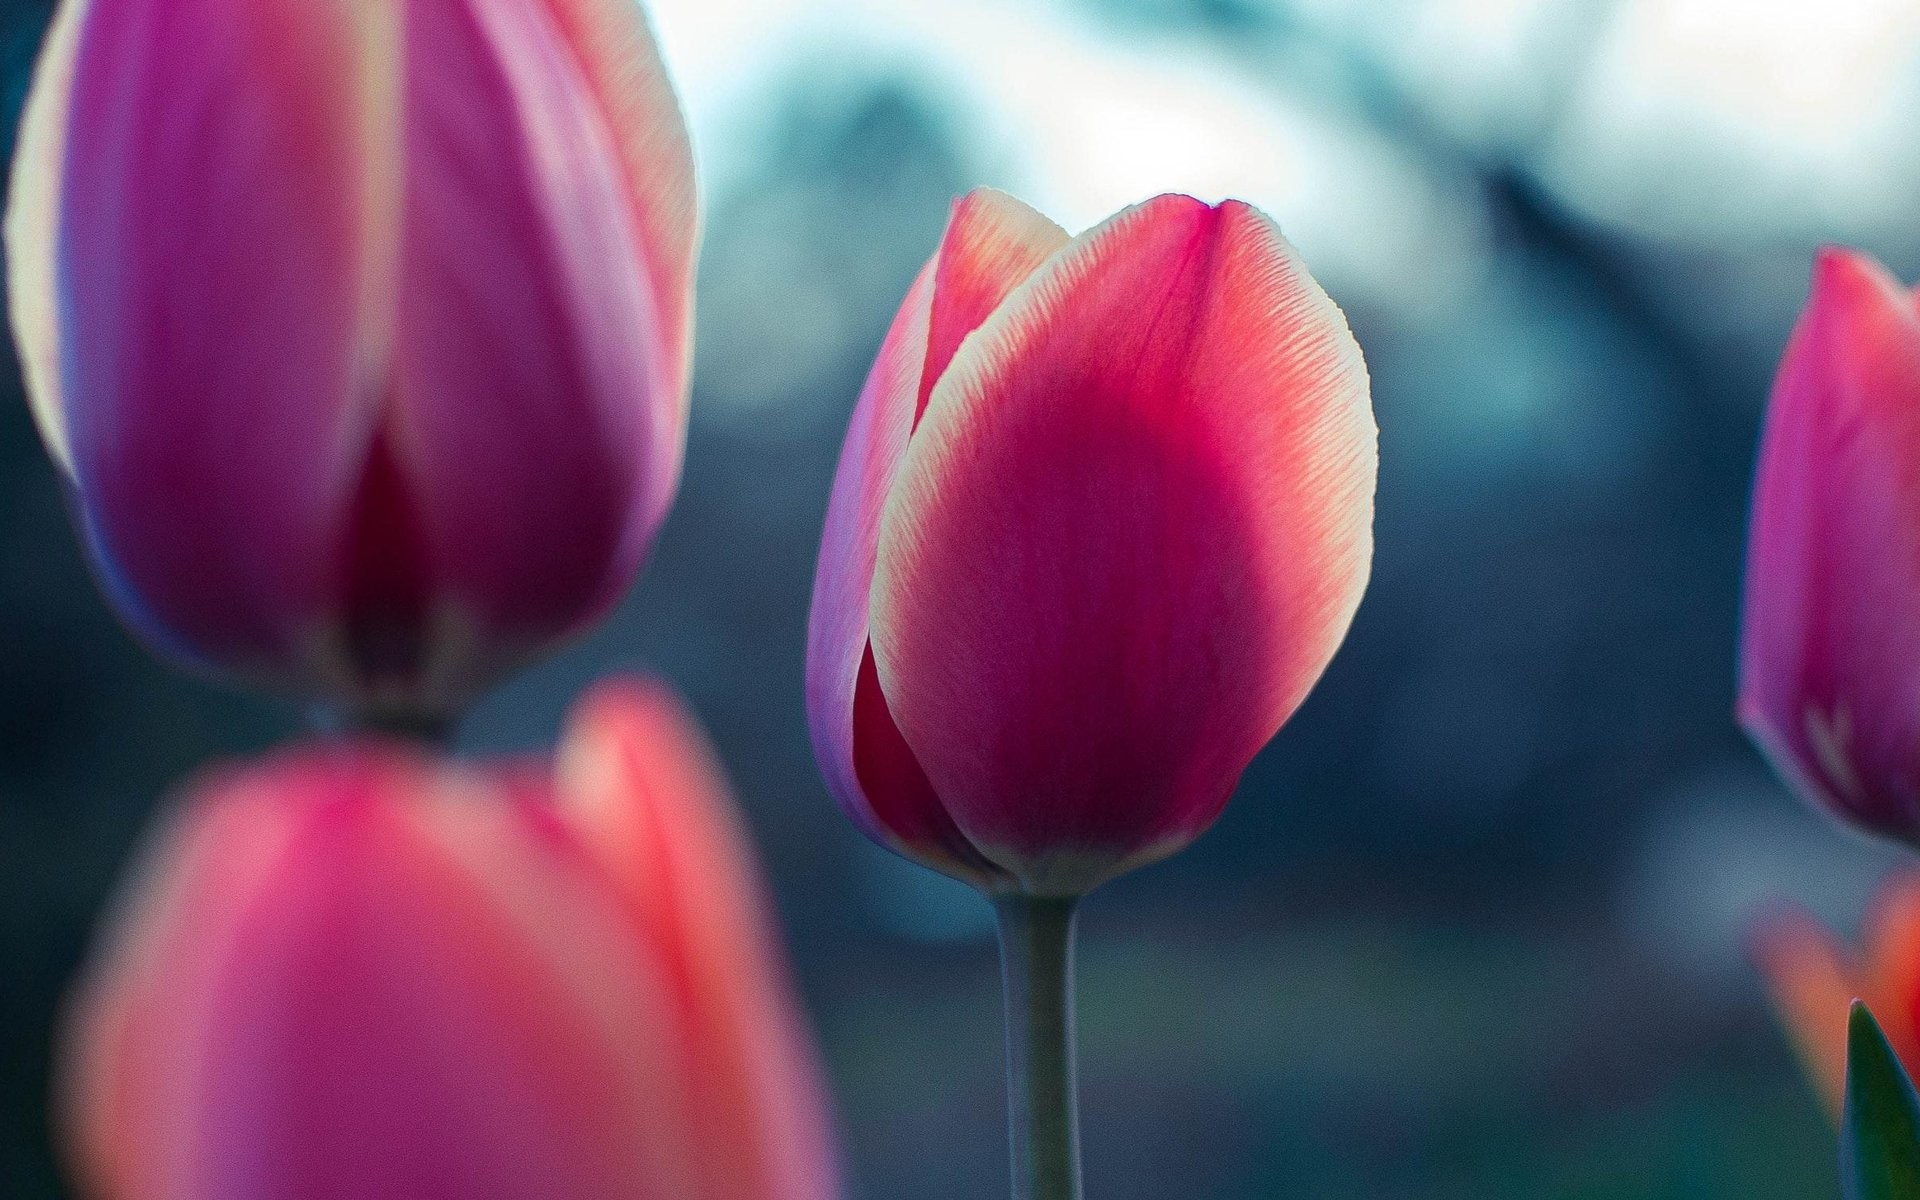 Res: 1920x1200, Widescreen Pink Tulip Flower Wallpaper : Flower Wallpaper for Phone &  Desktop Backgrounds Collections